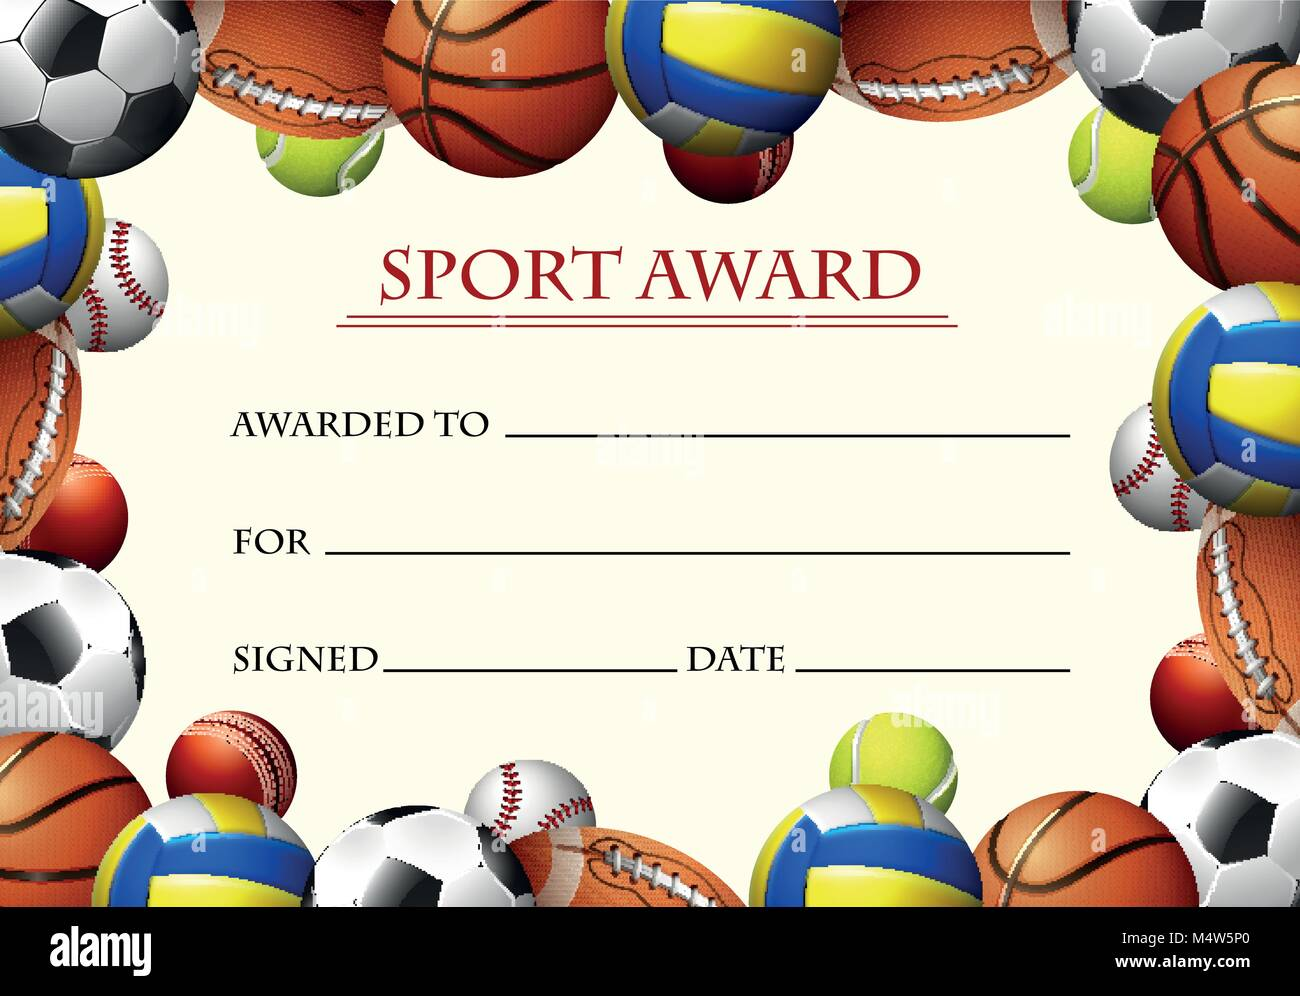 Certificate template for sport award illustration stock vector art certificate template for sport award illustration yadclub Gallery